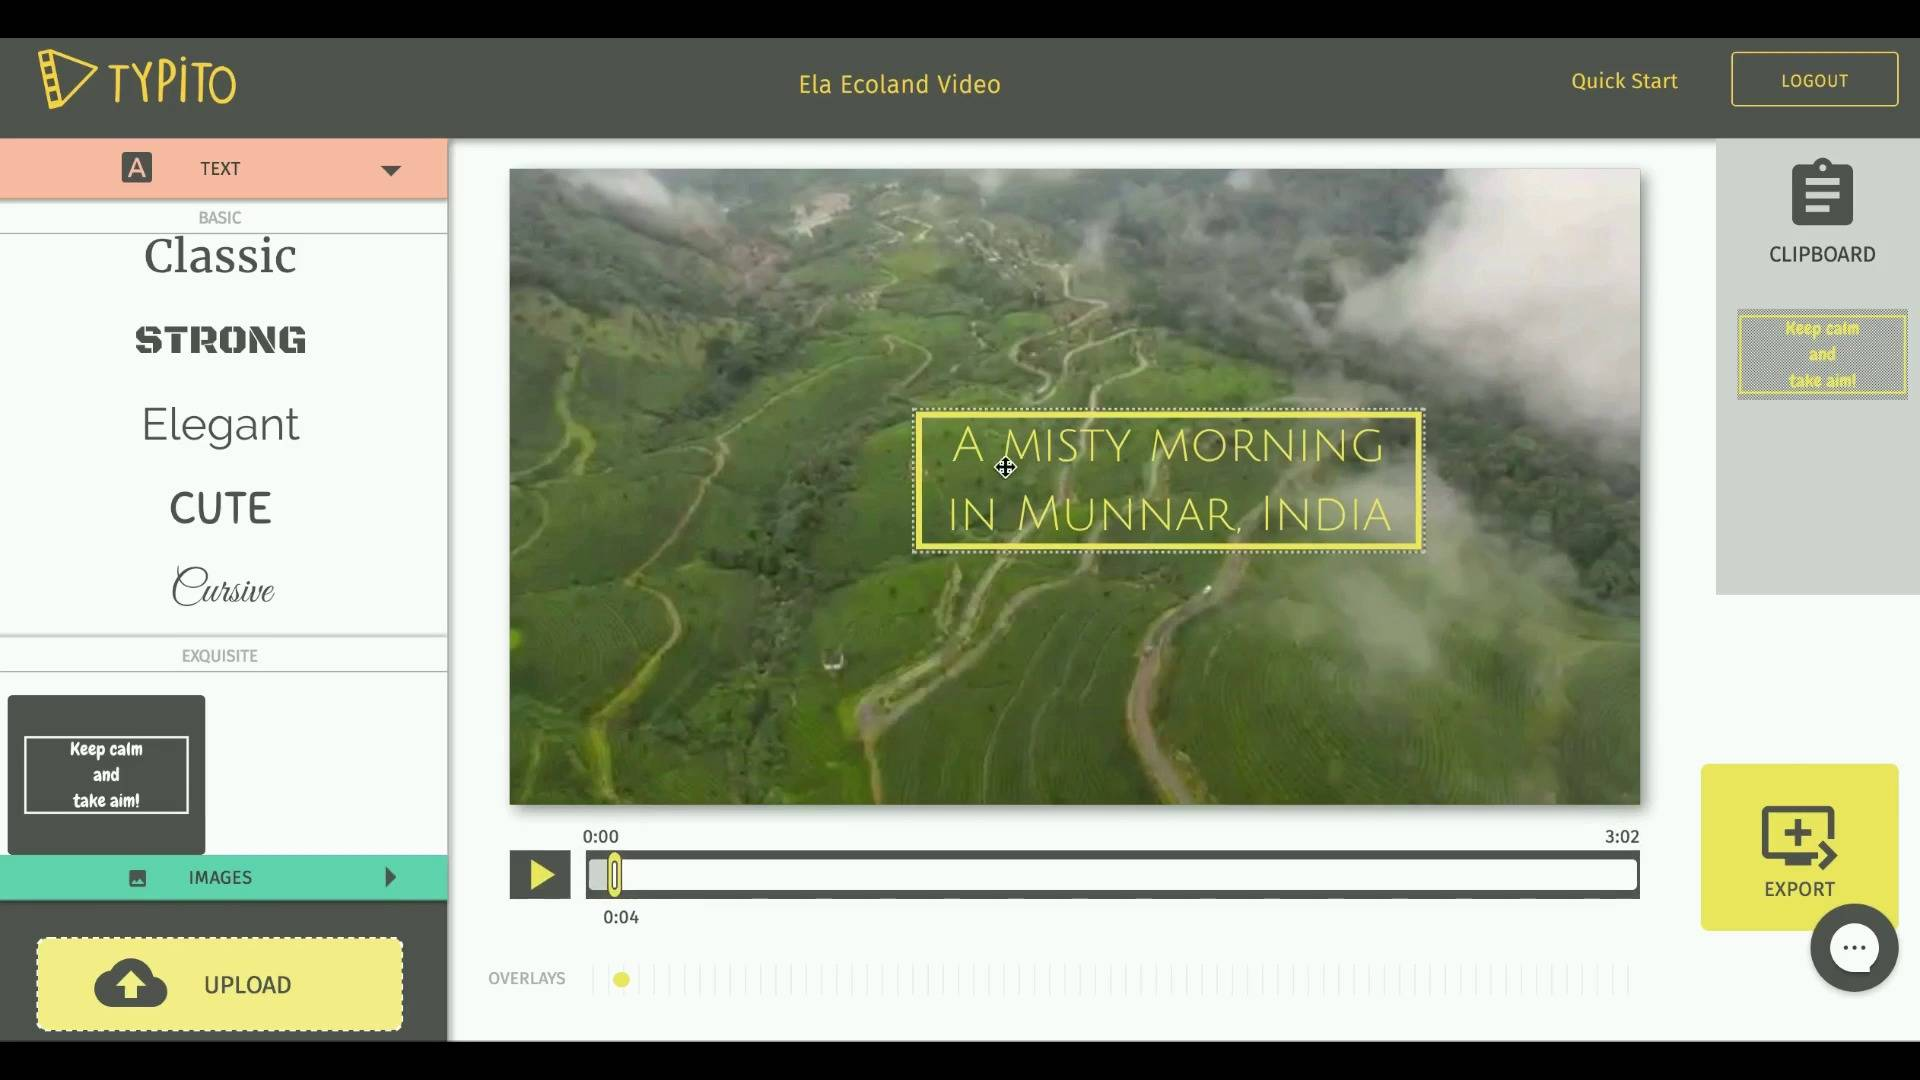 That's us testing out the first version of Typito's text templates on a footage of Munnar in Kerala